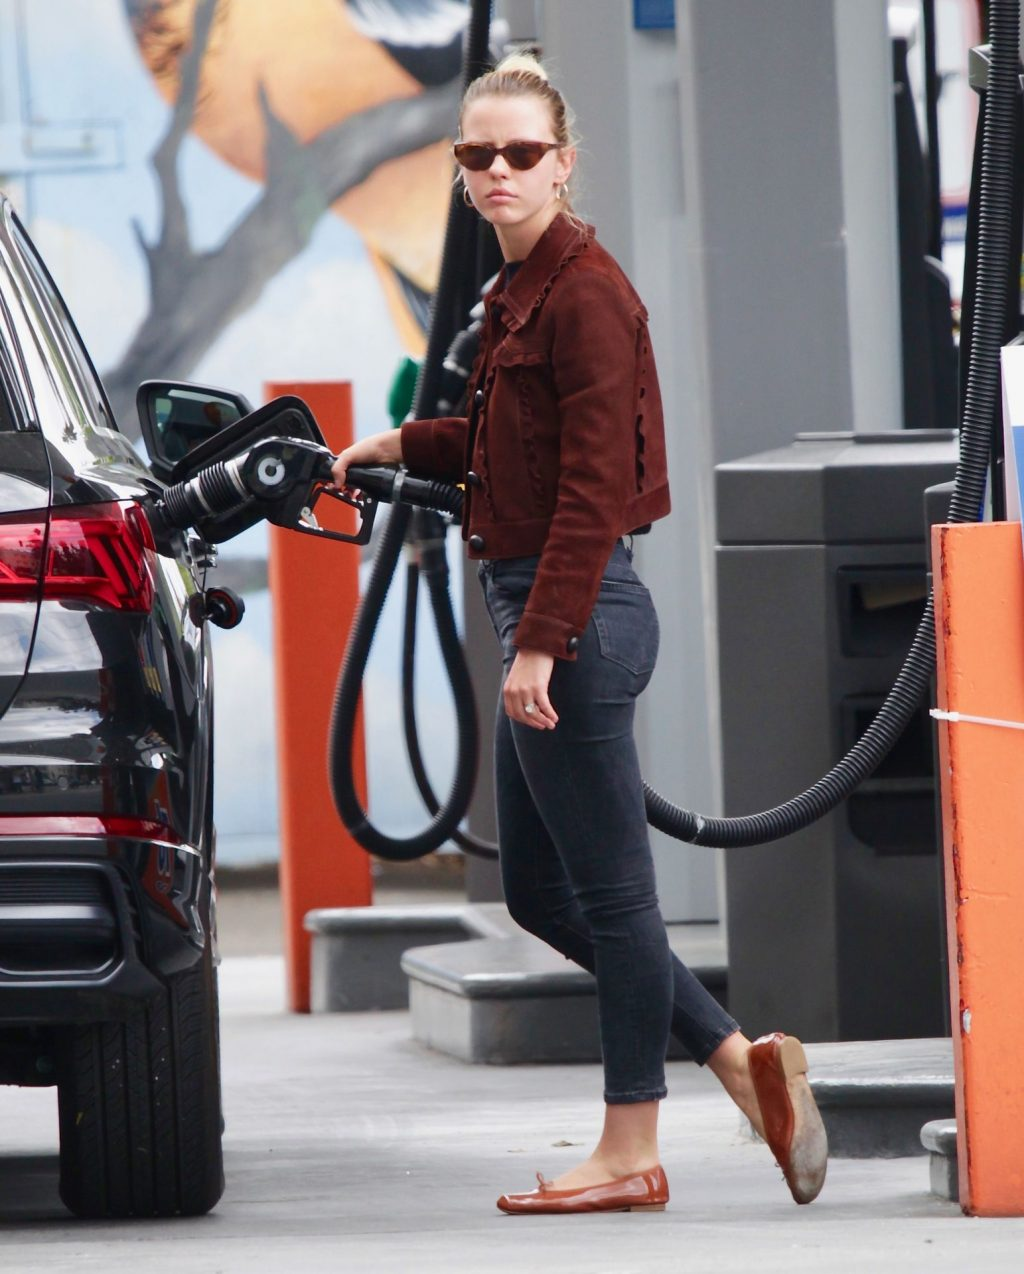 Mia Goth Looks Fashionable as She Steps Out To Run Errands in LA (13 Photos)